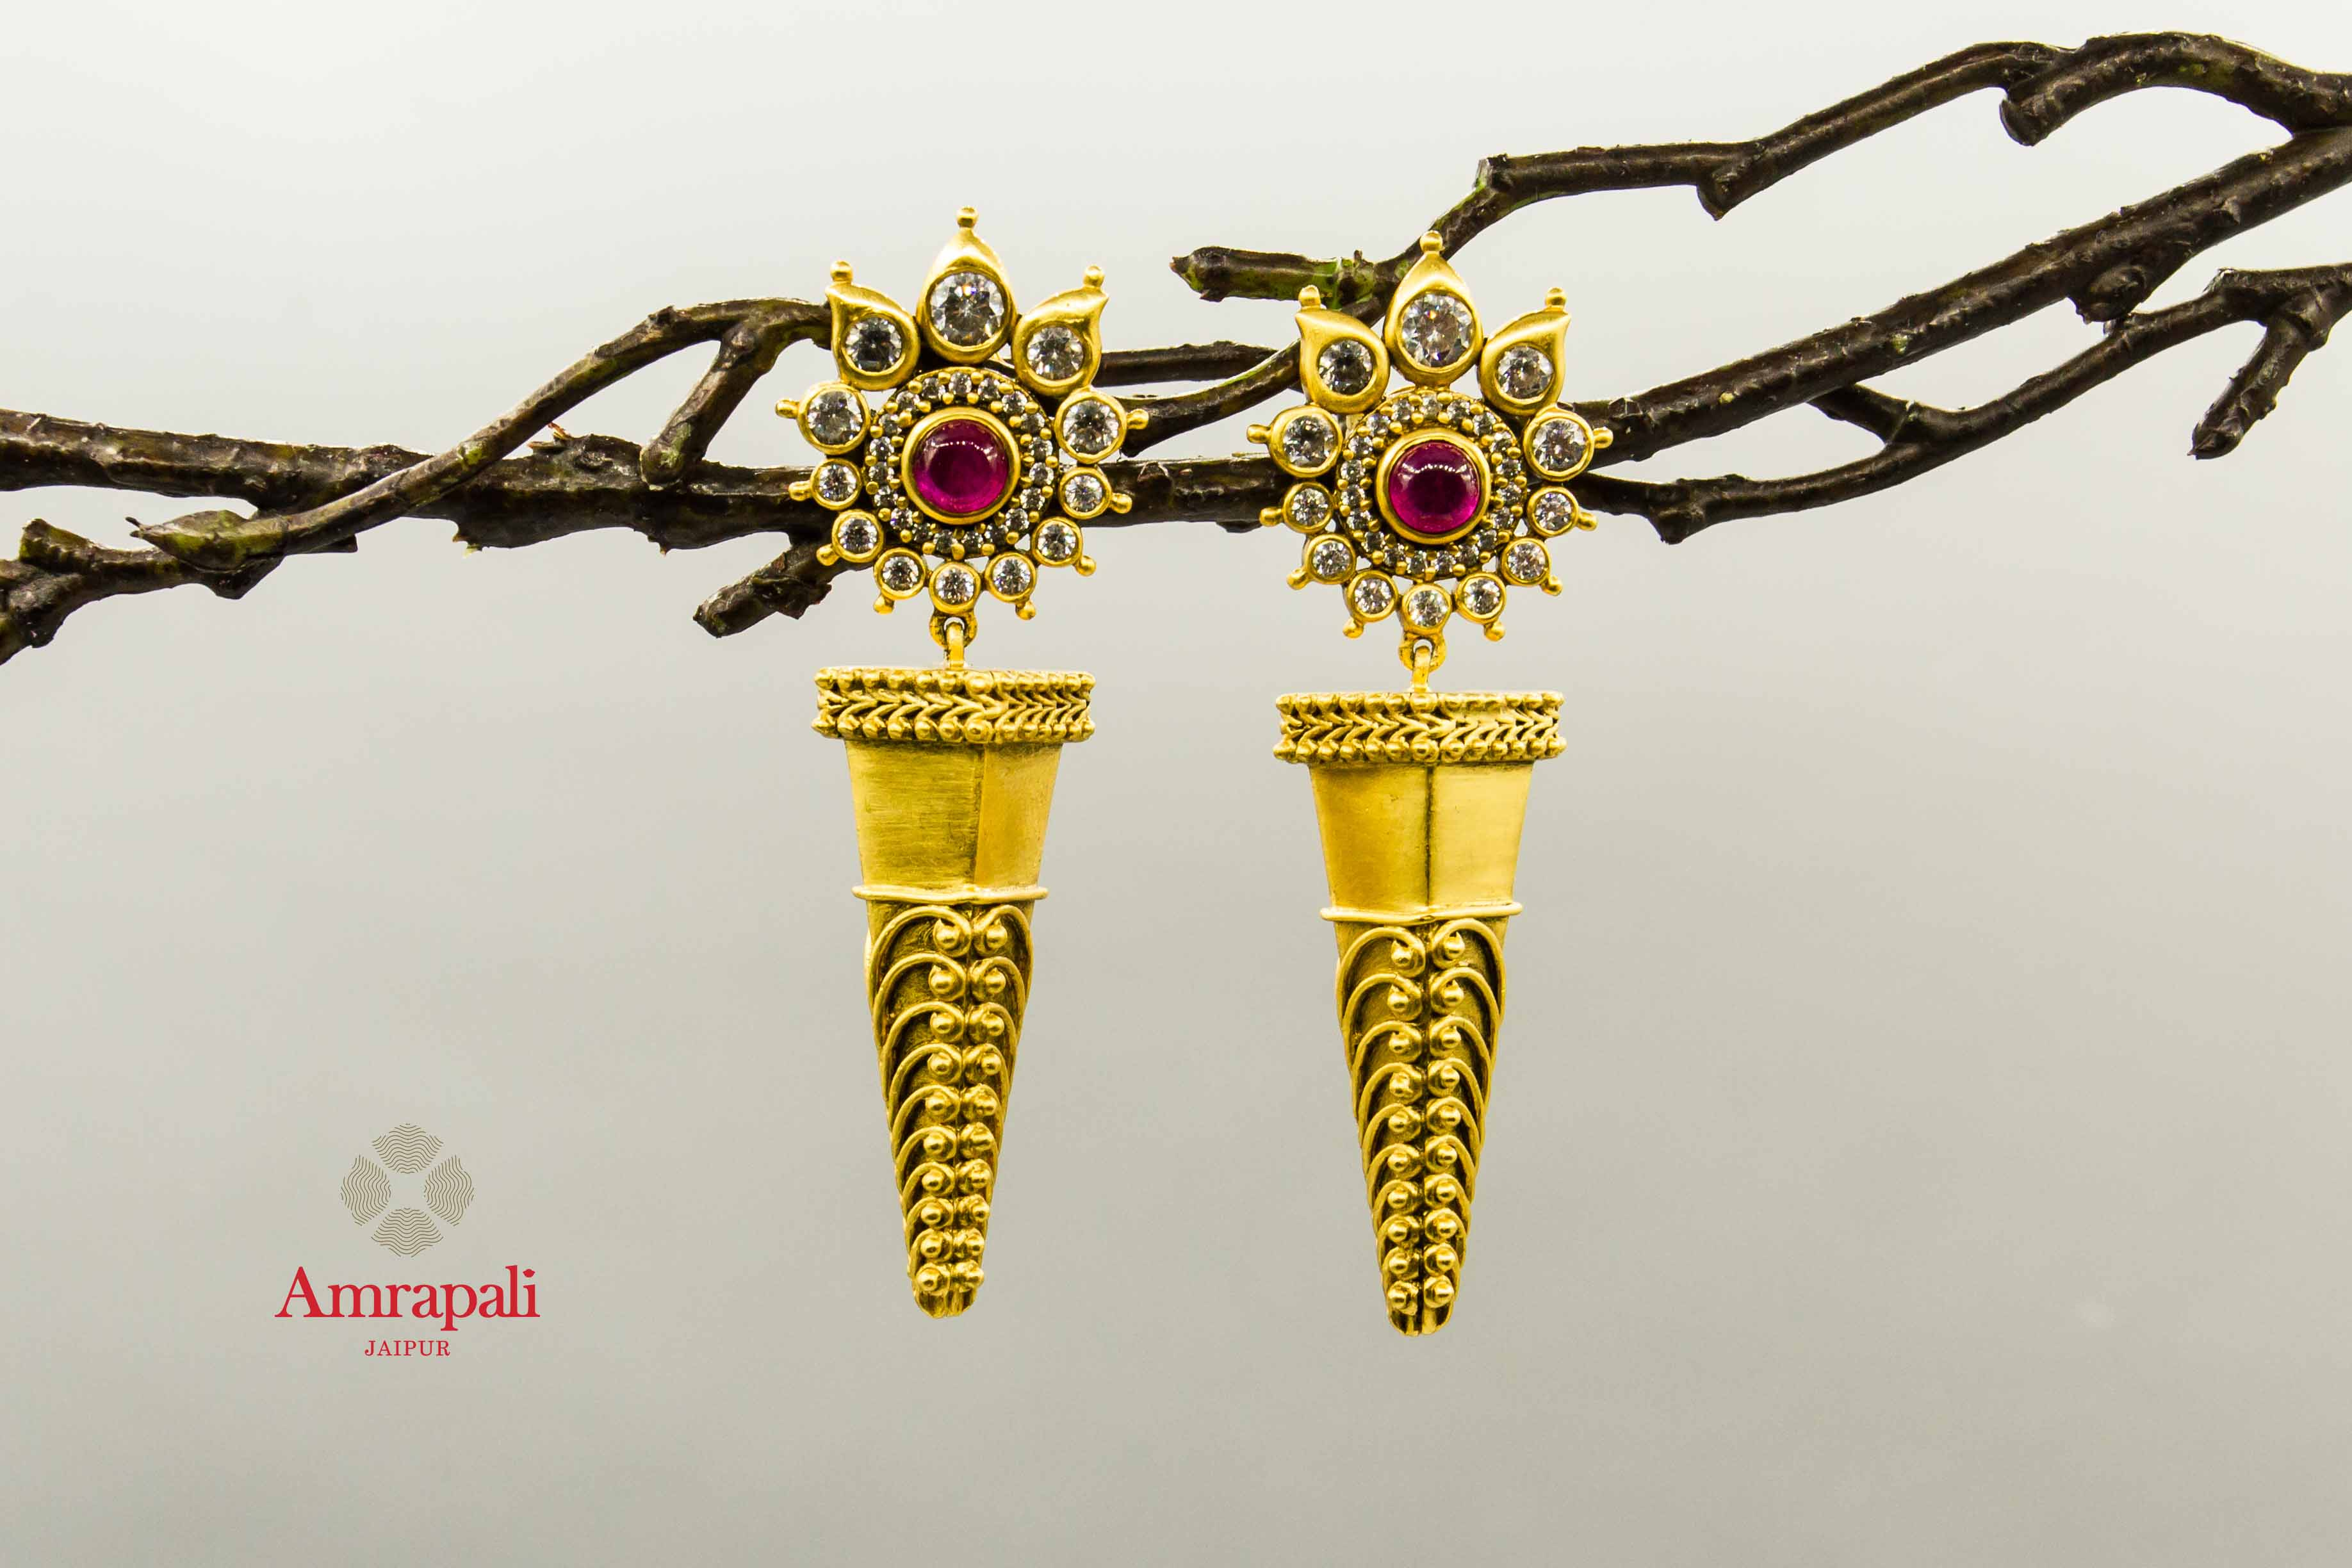 20C242 Flower Filigree Rawa Silver Gold Plated Spike Drop Earrings